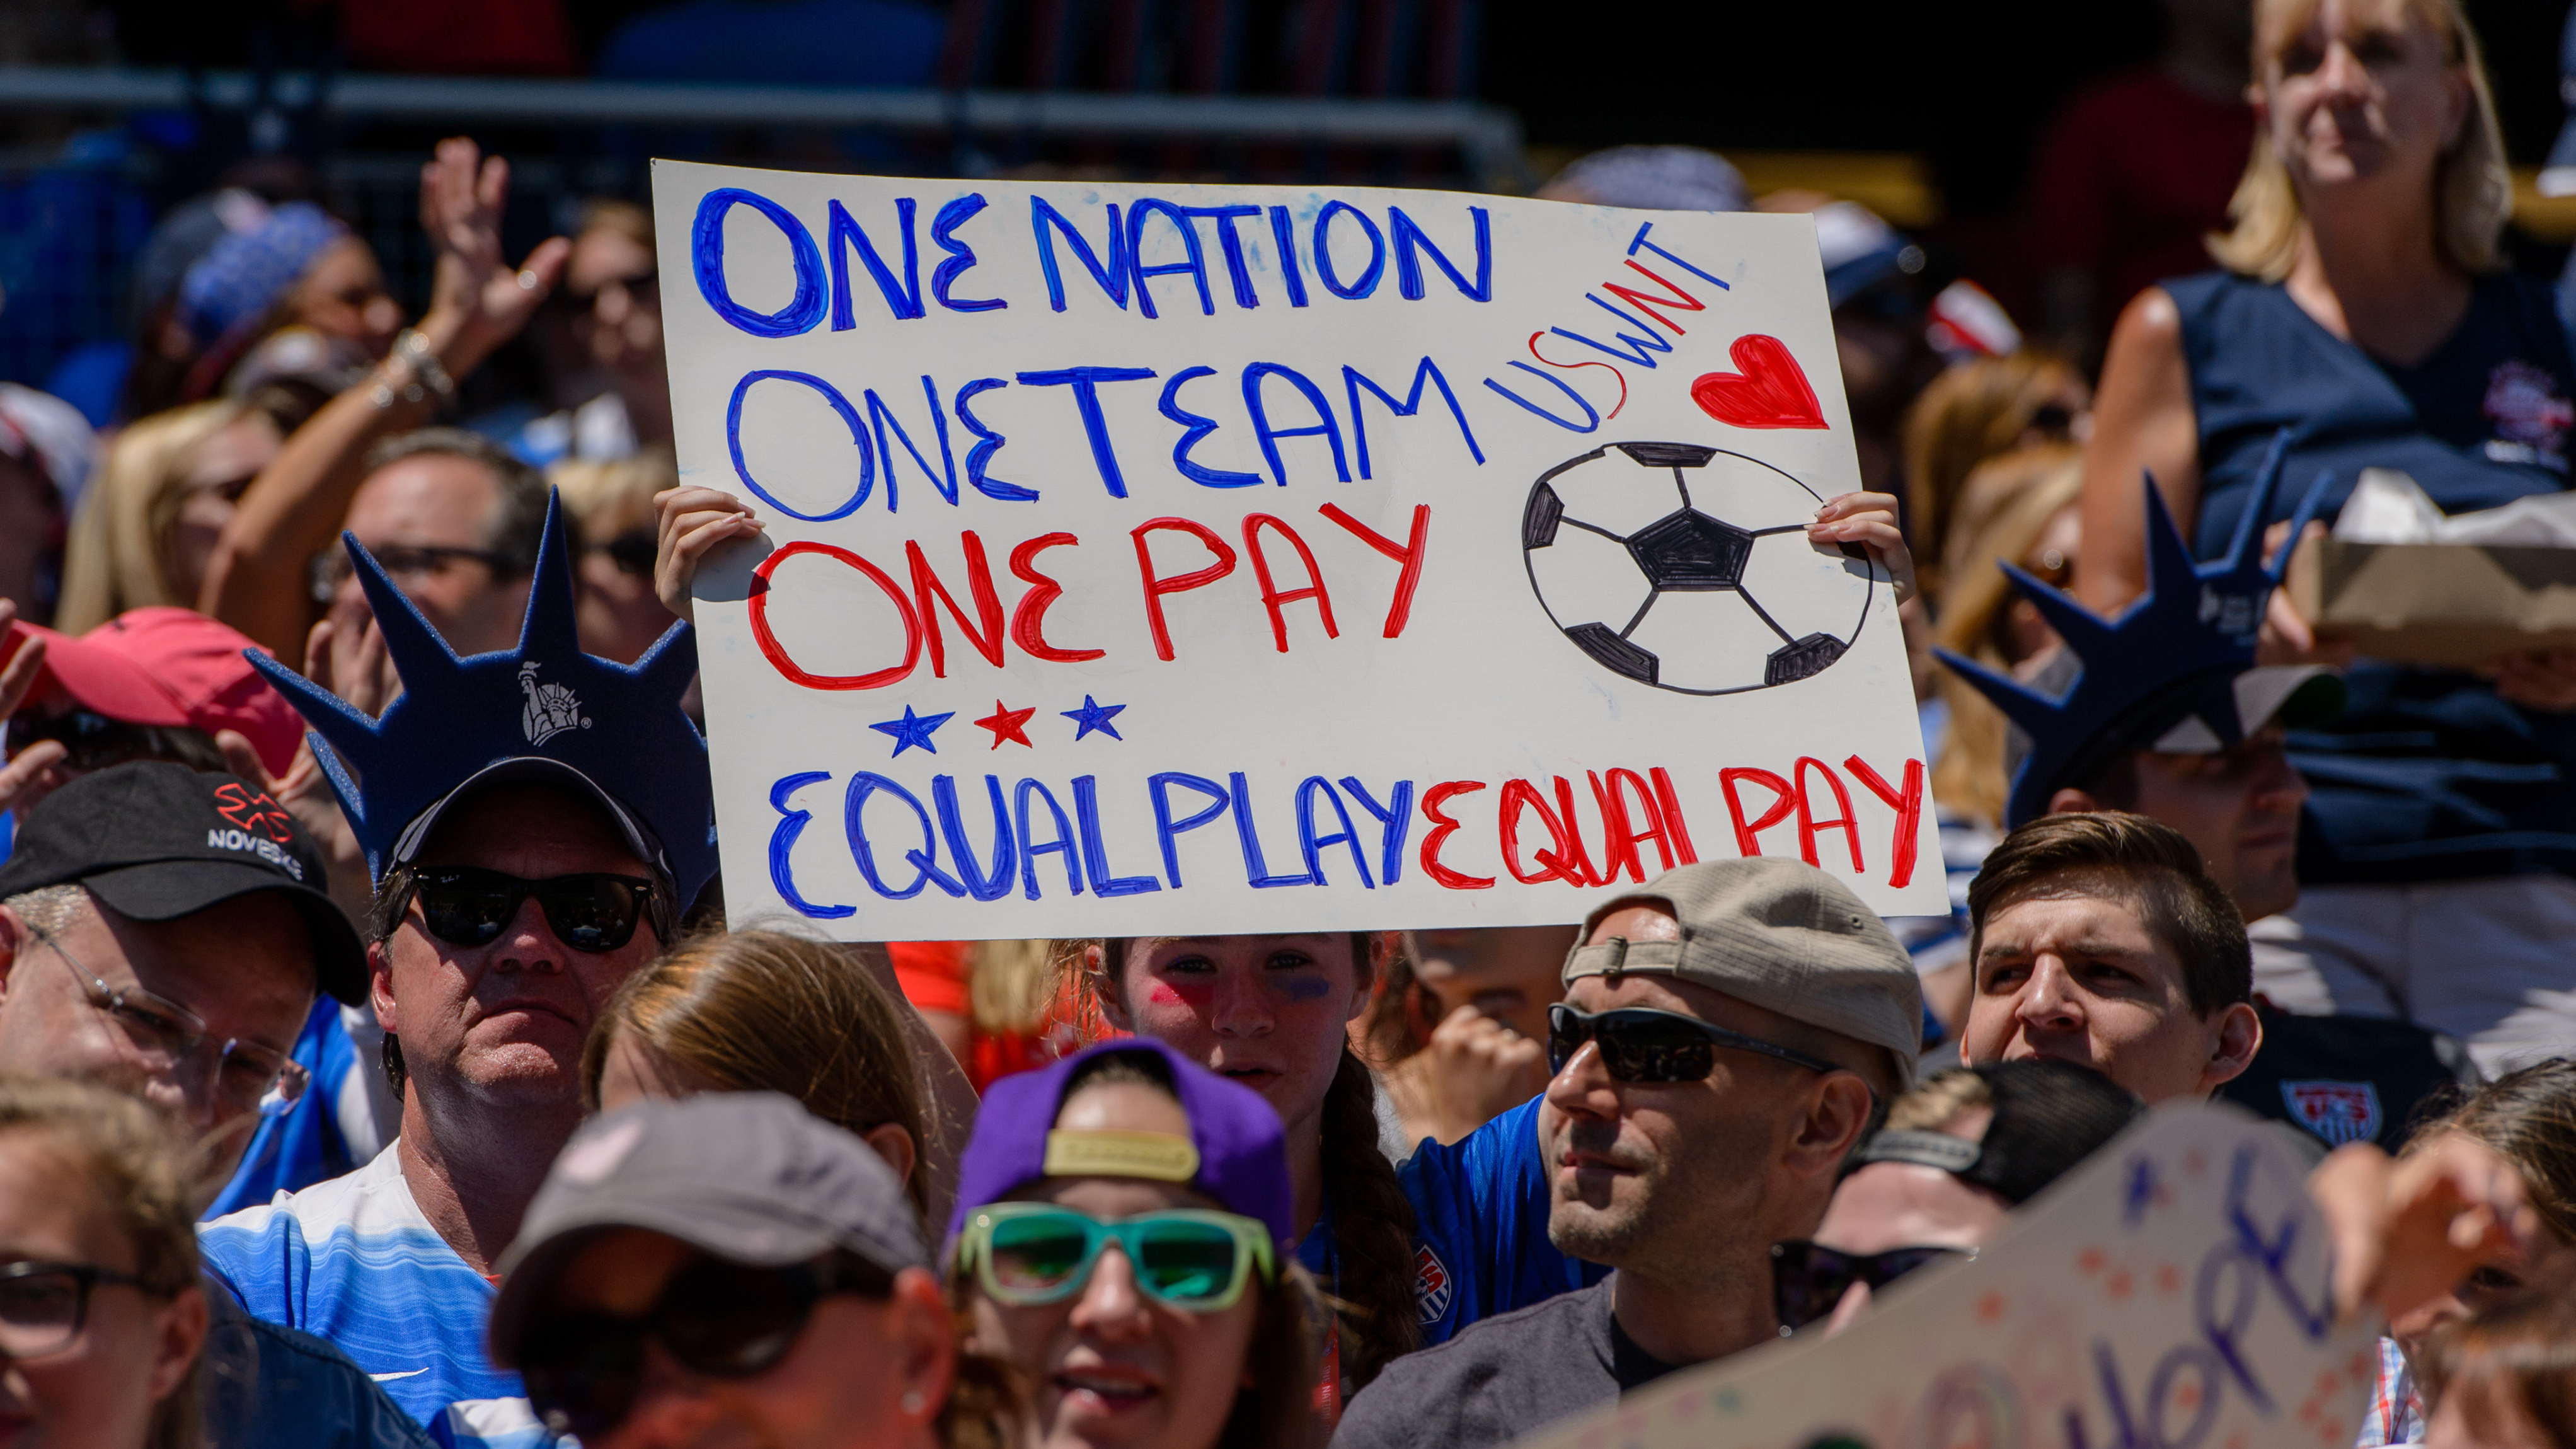 USWNT equal pay us soccer